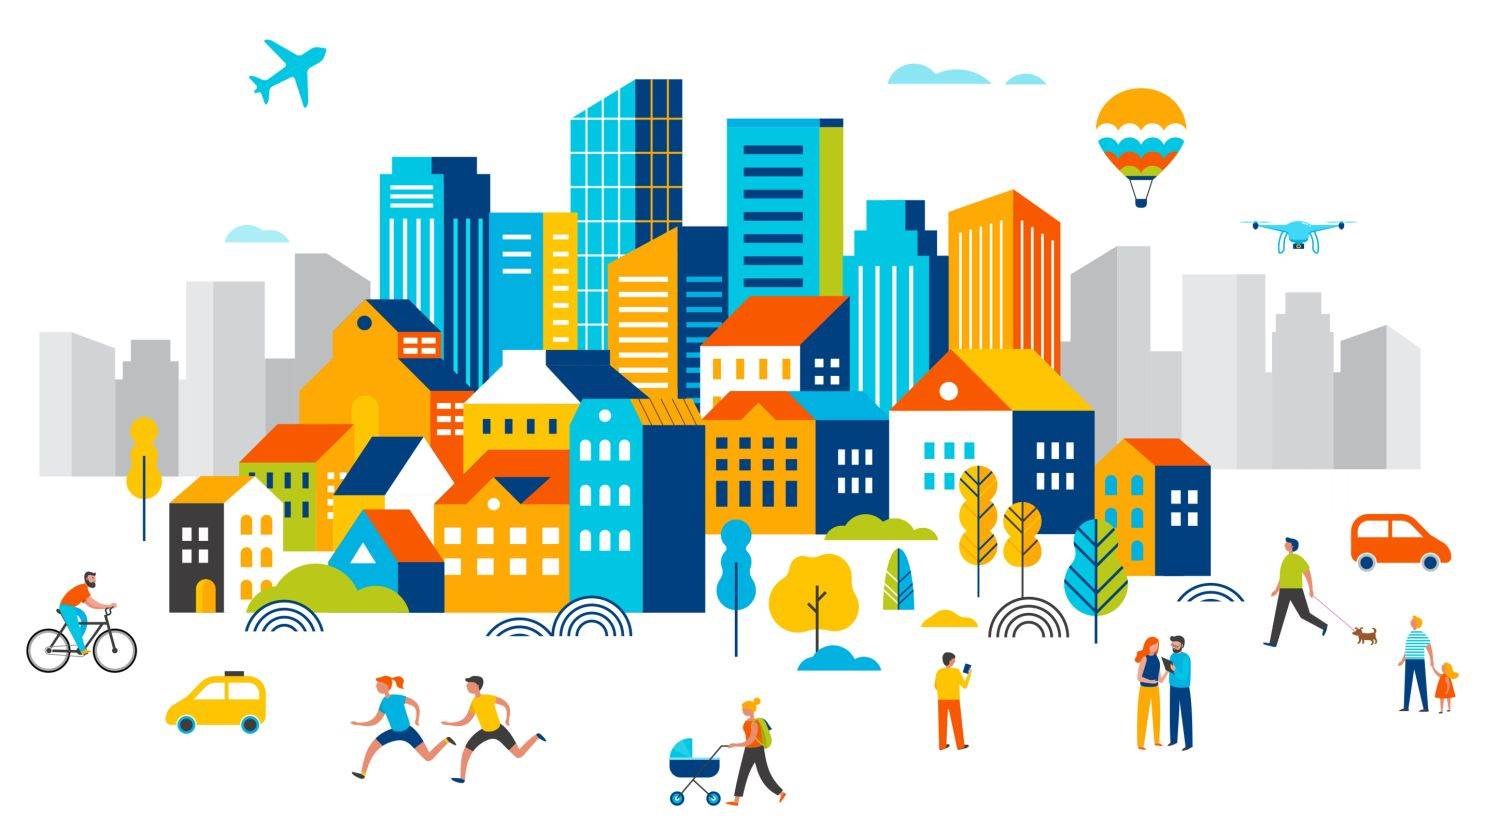 plane,small,infographic,bicycle,run,building,scene,pin,road,city